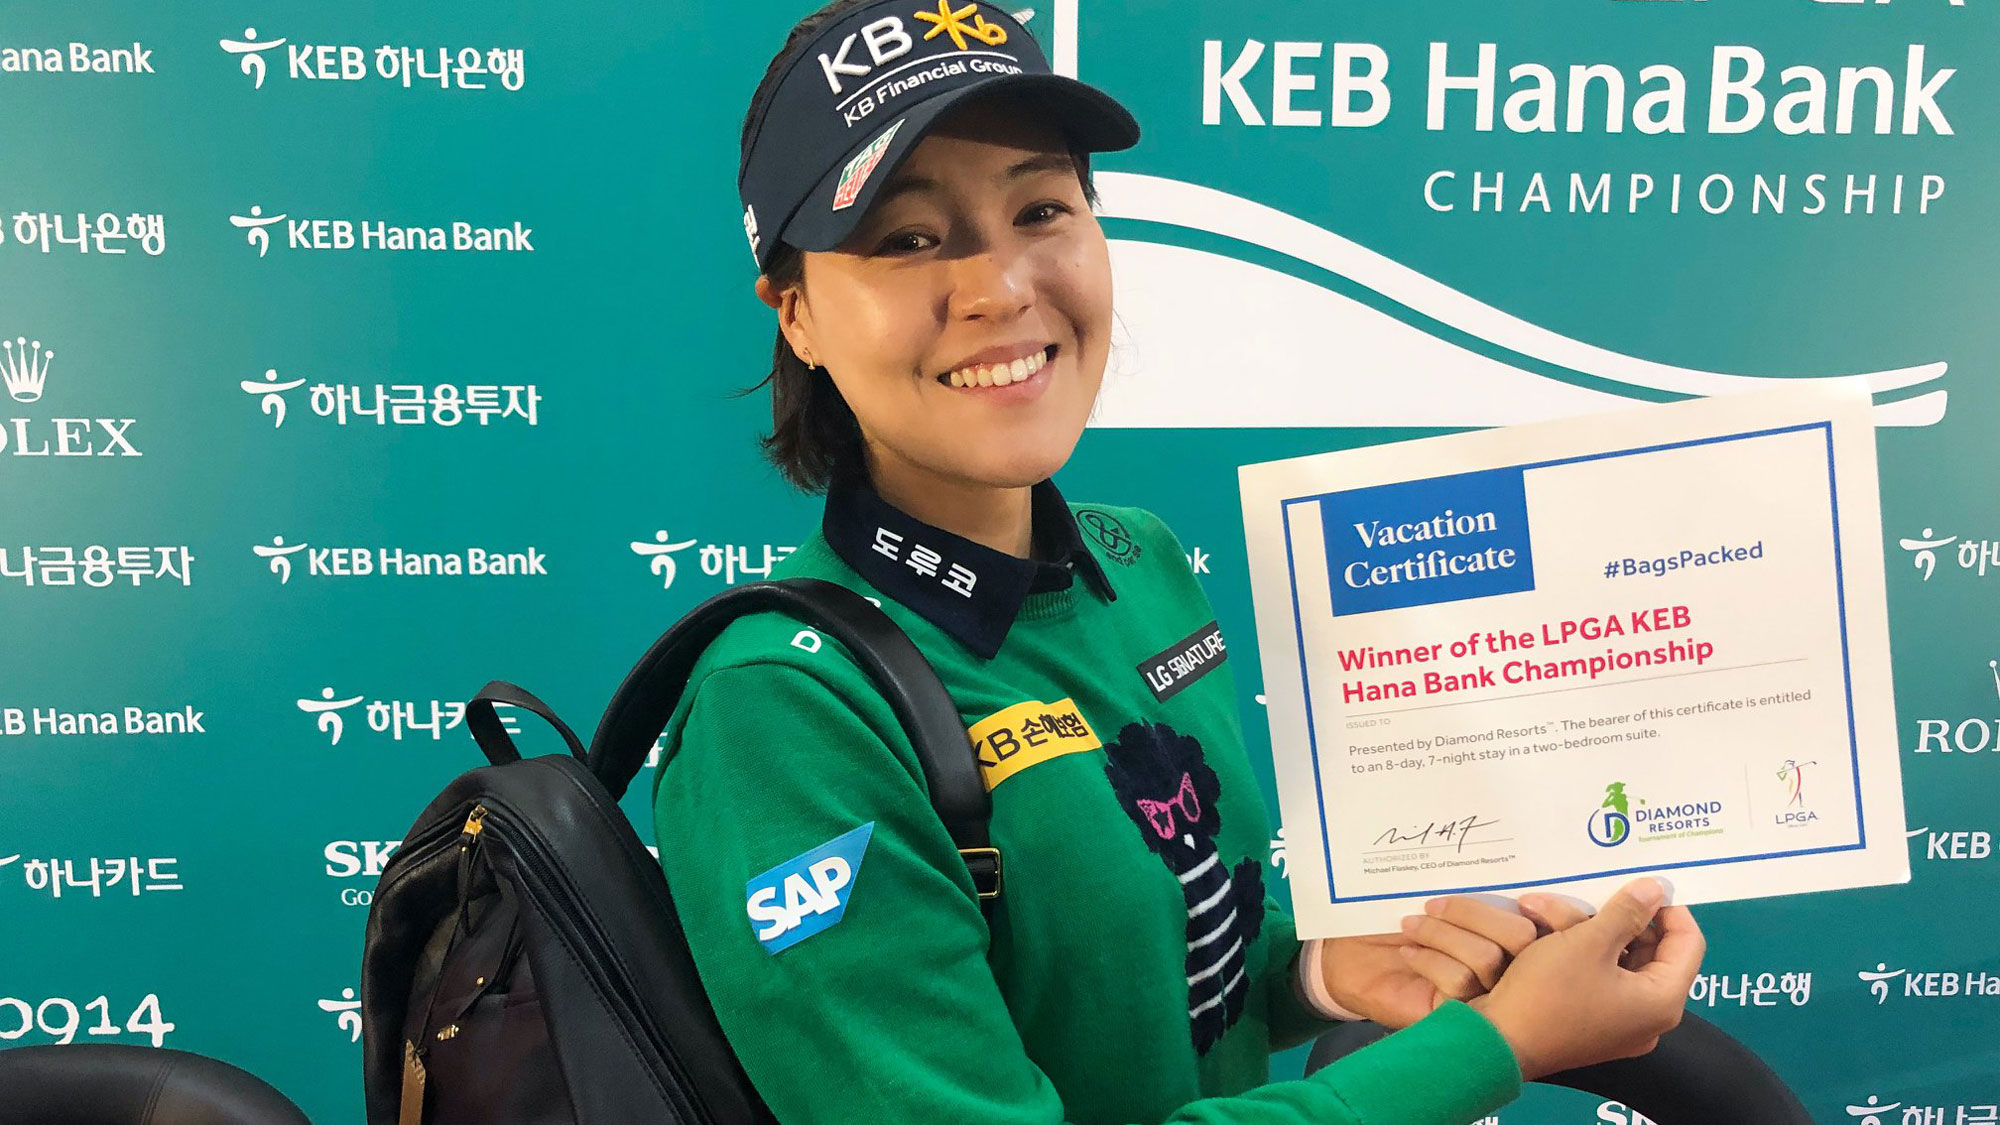 In Gee Chun has her #BagsPacked for the 2019 Diamond Resorts Tournament of Champions presented by Insurance Office of America after her victory at the 2018 LPGA KEB Hana Bank Championship